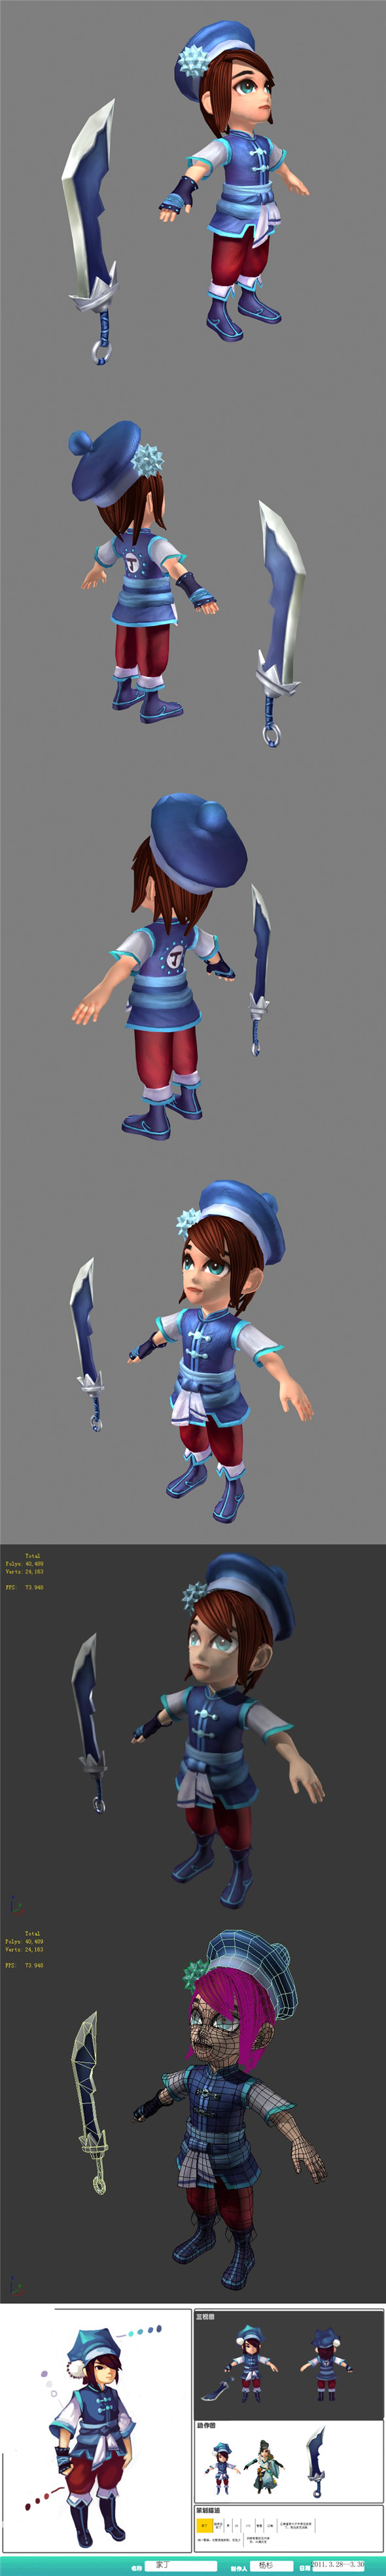 Game characters - home Ding - 3DOcean Item for Sale